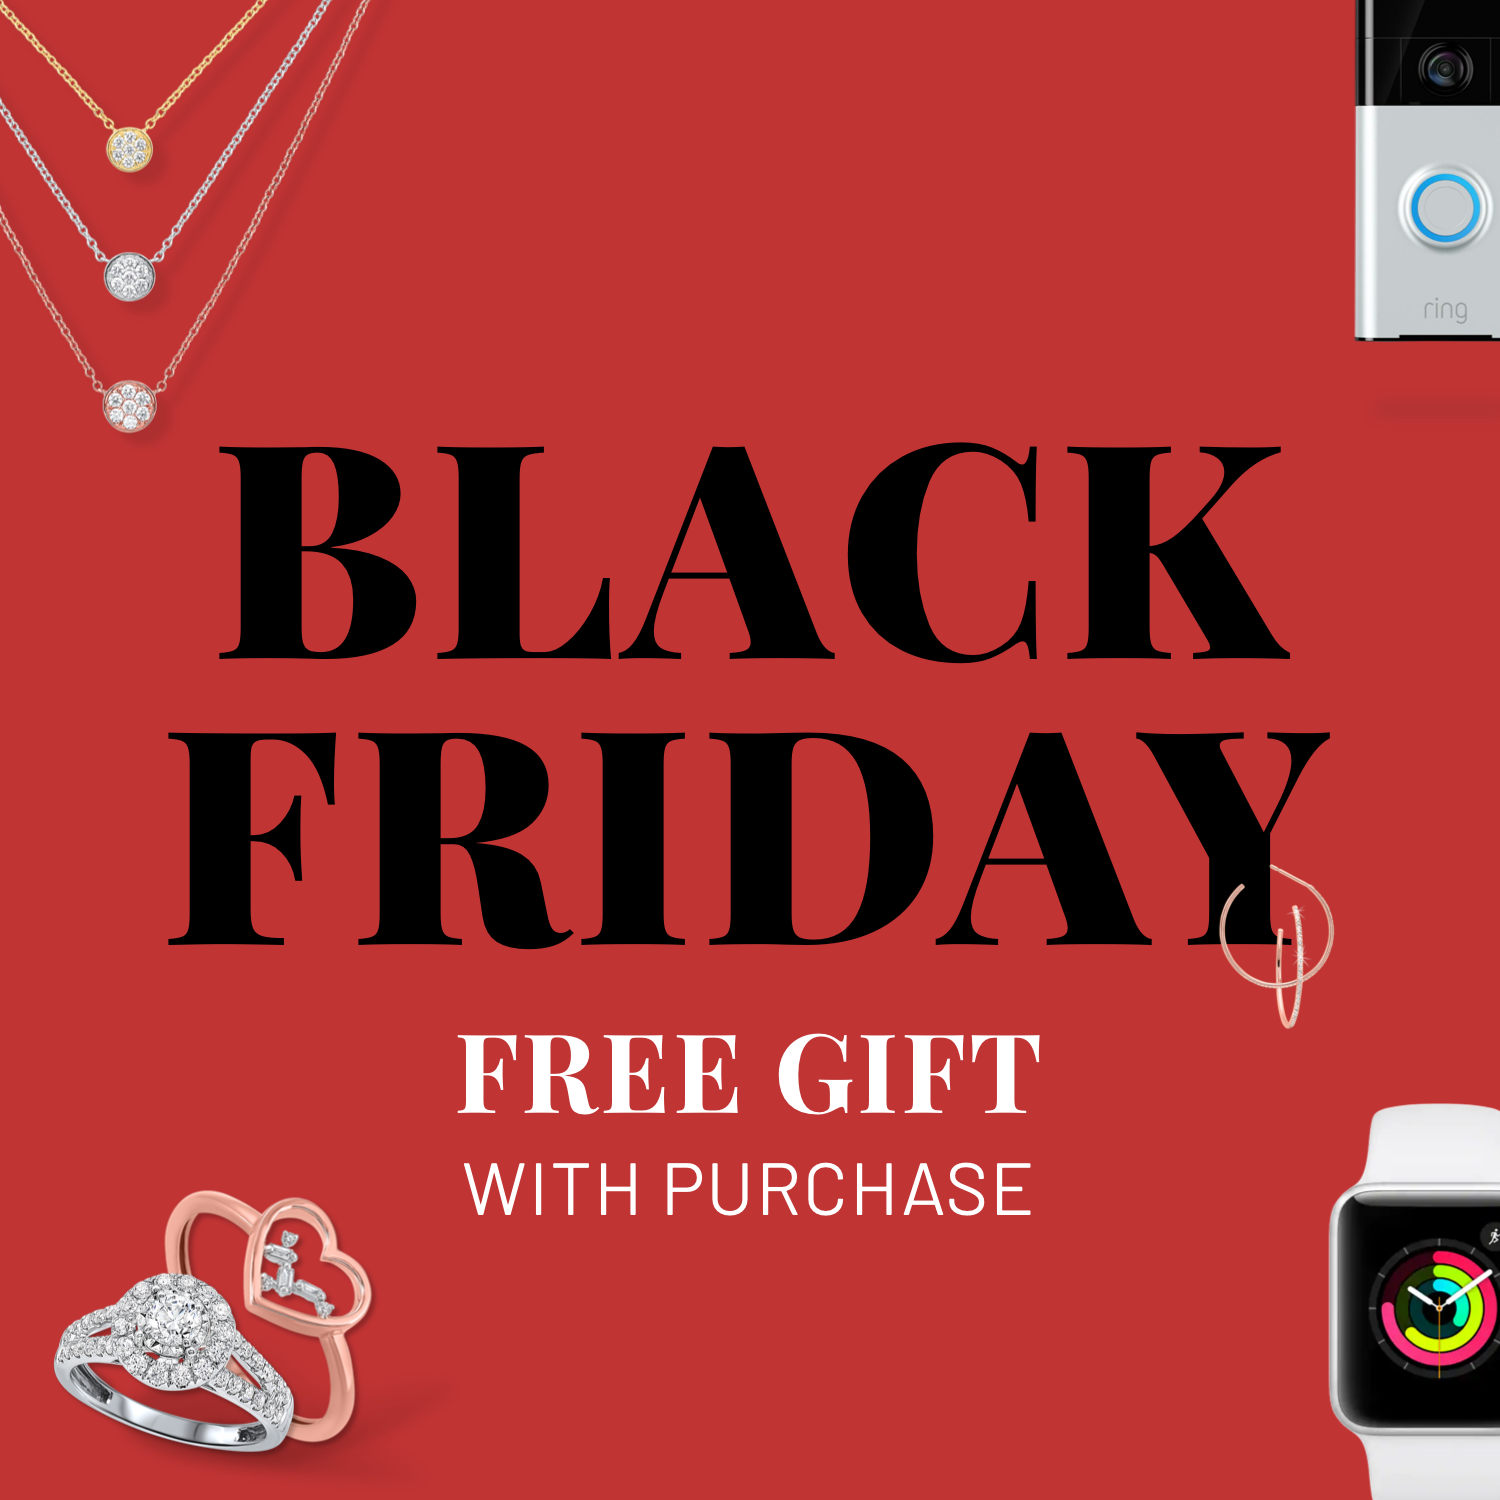 Our amazing black friday deal: free top tech gifts with purchase!